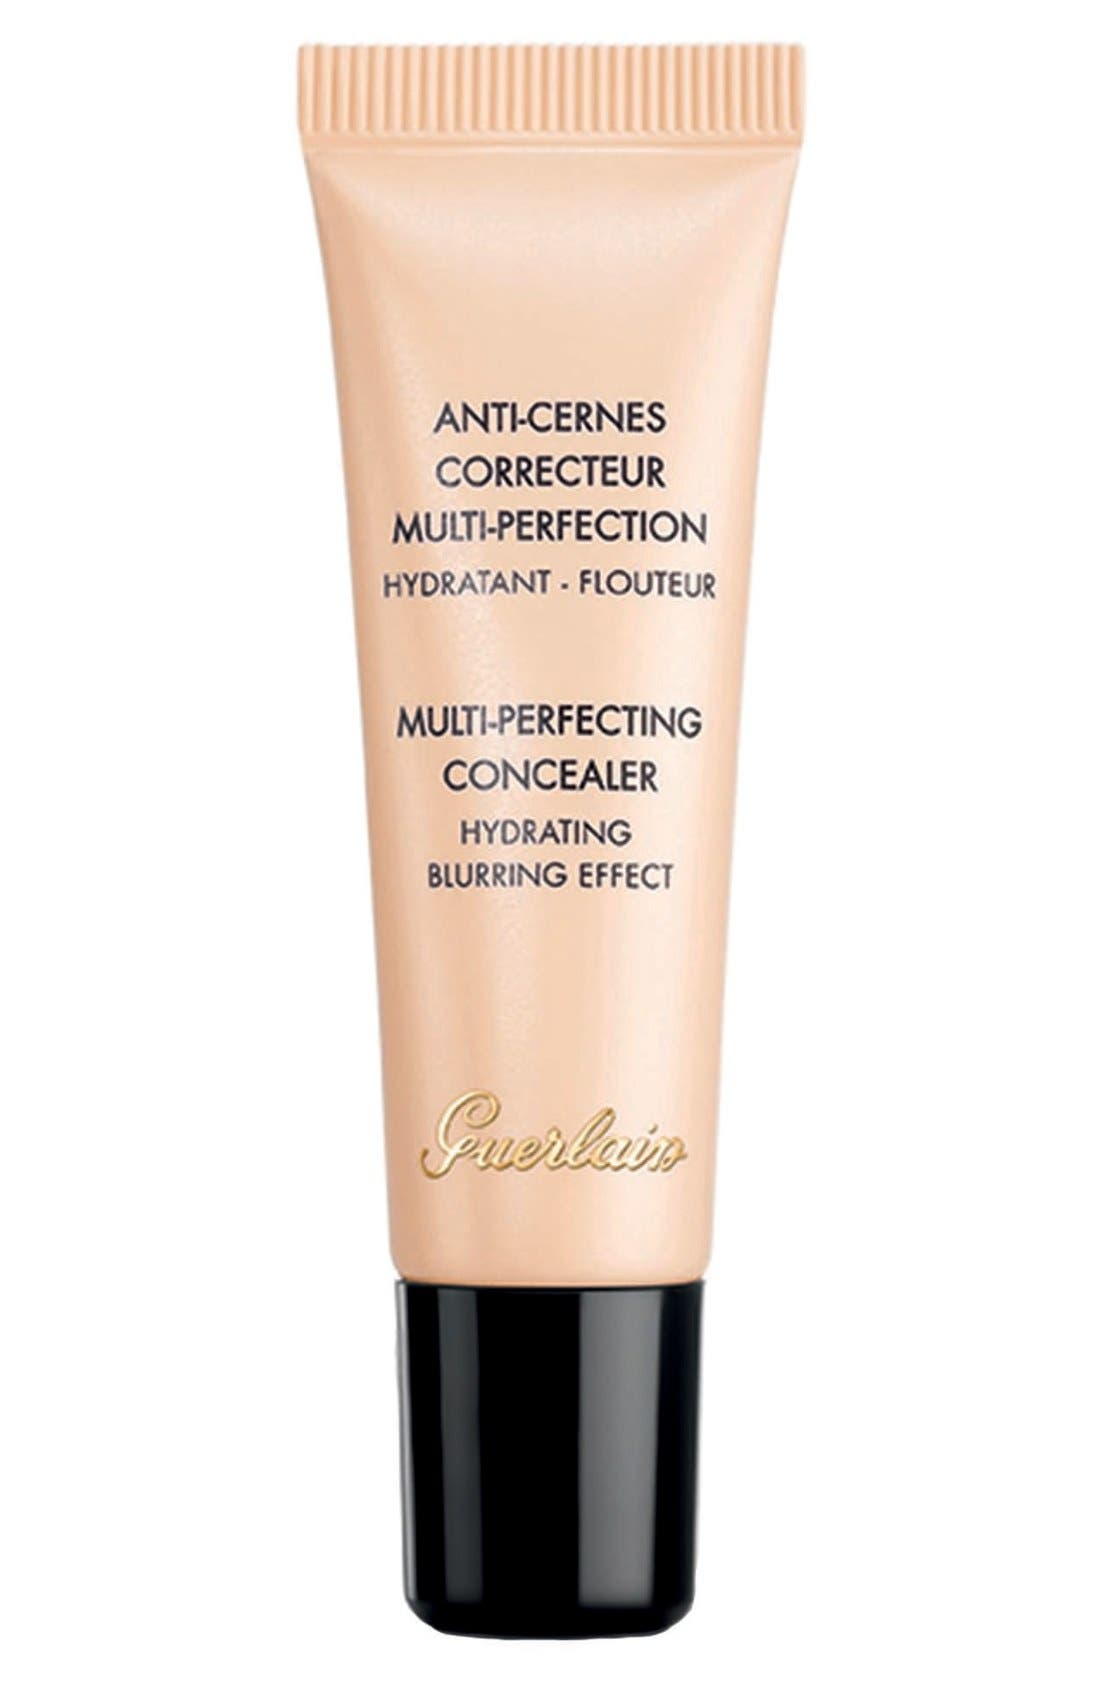 Multi-Perfecting Concealer Hydrating Blurring Effect,                             Main thumbnail 1, color,                             01